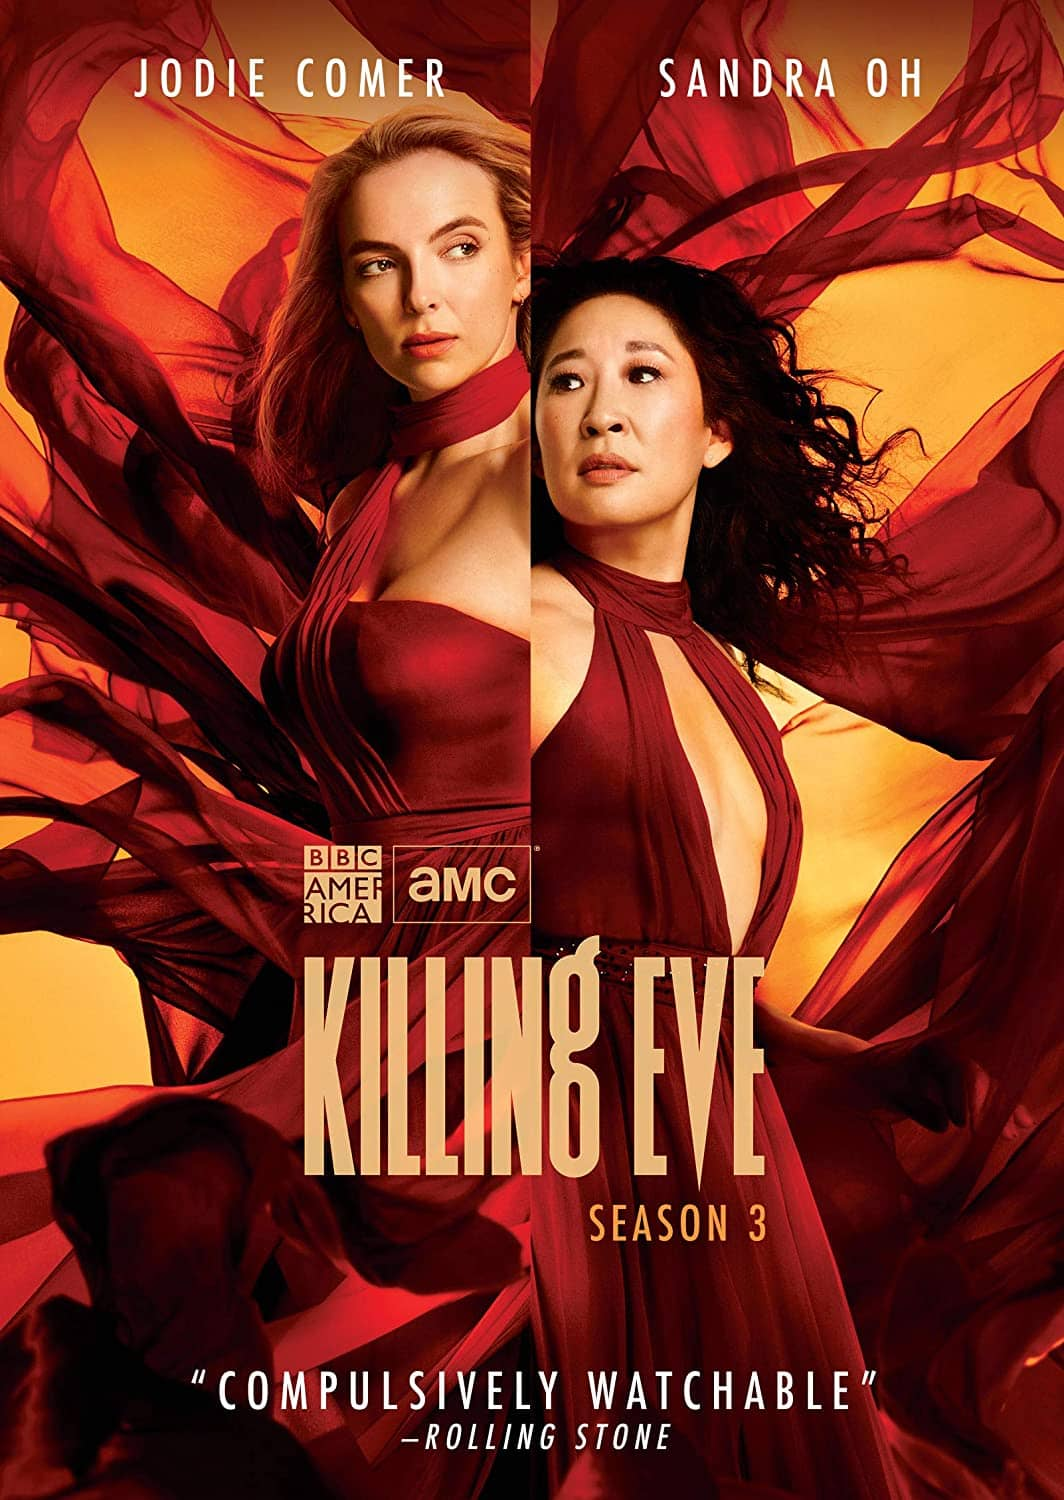 Killing Eve Season 3 DVD